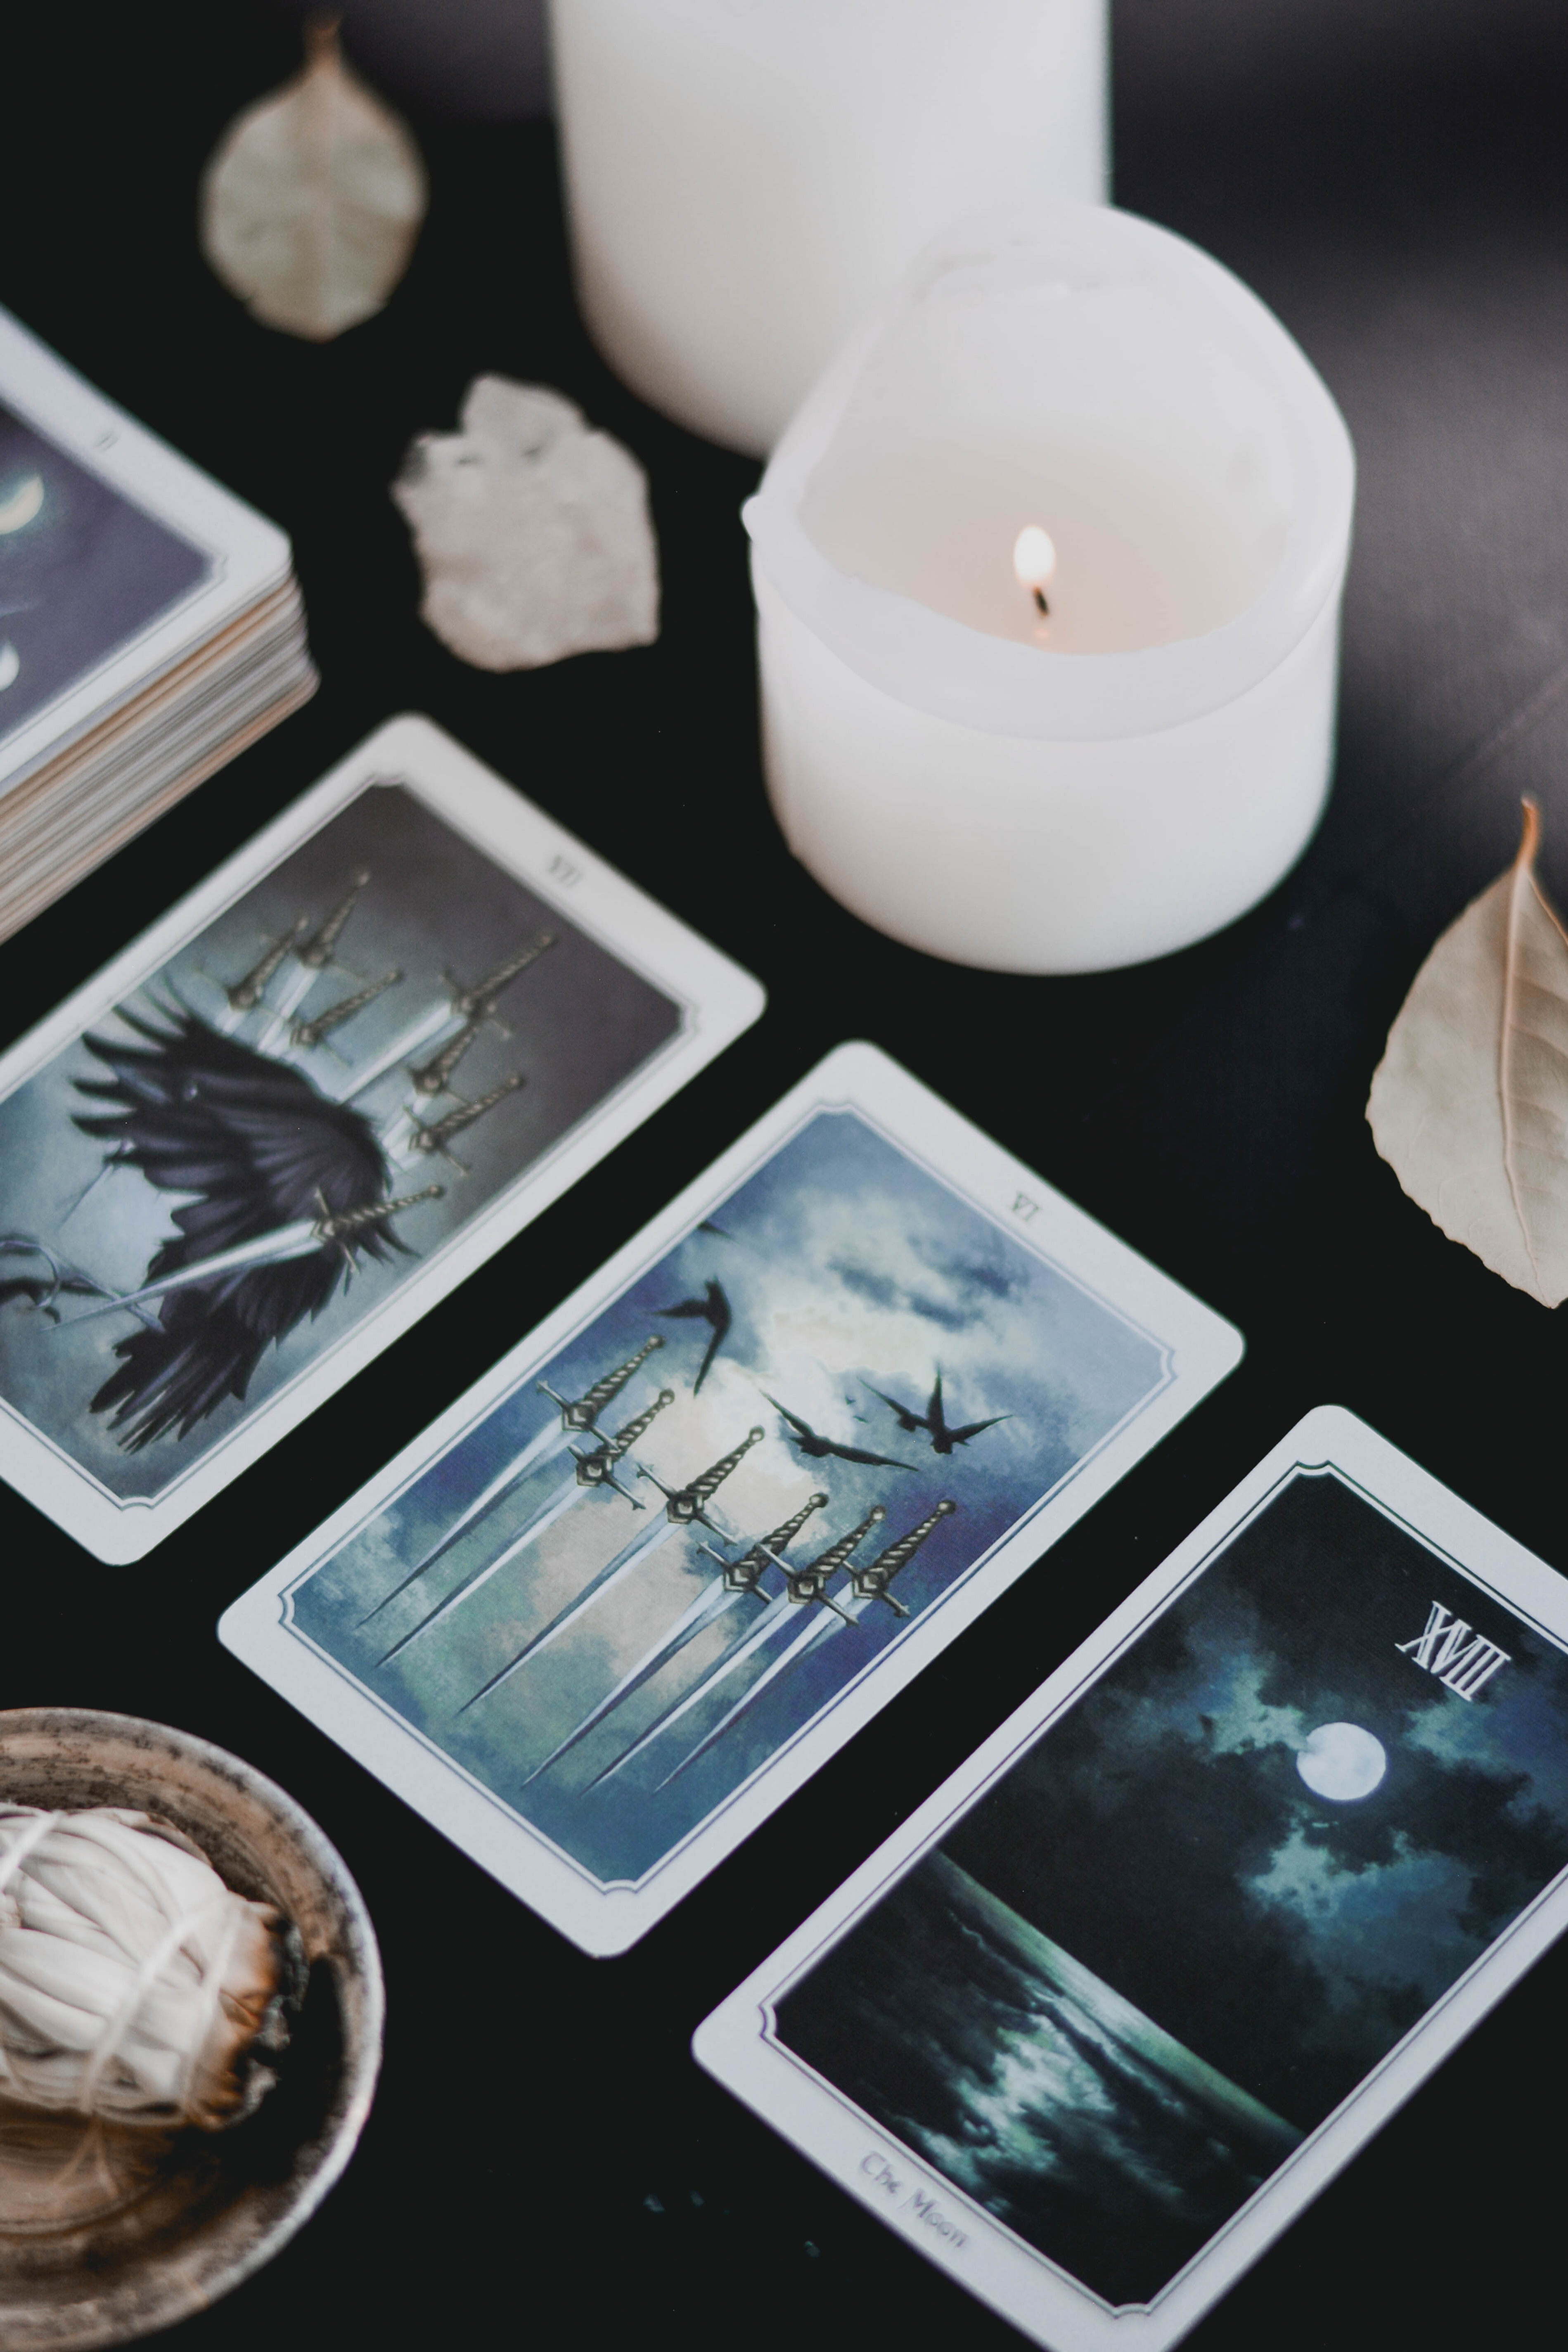 45 mins Psychic reading 1:1 session